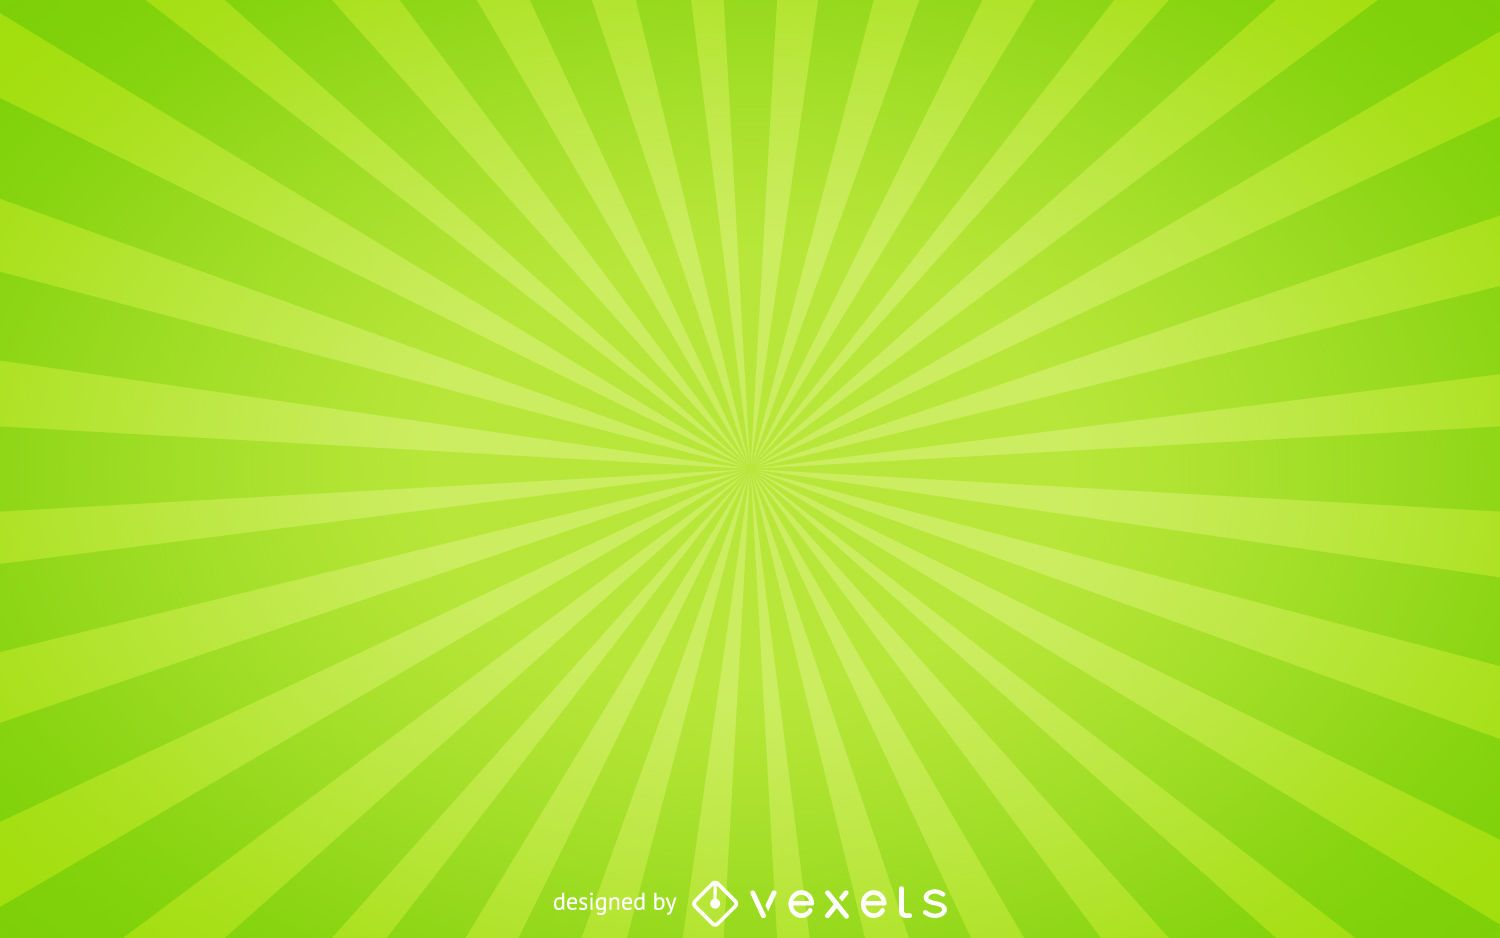 green sunburst background - photo #15